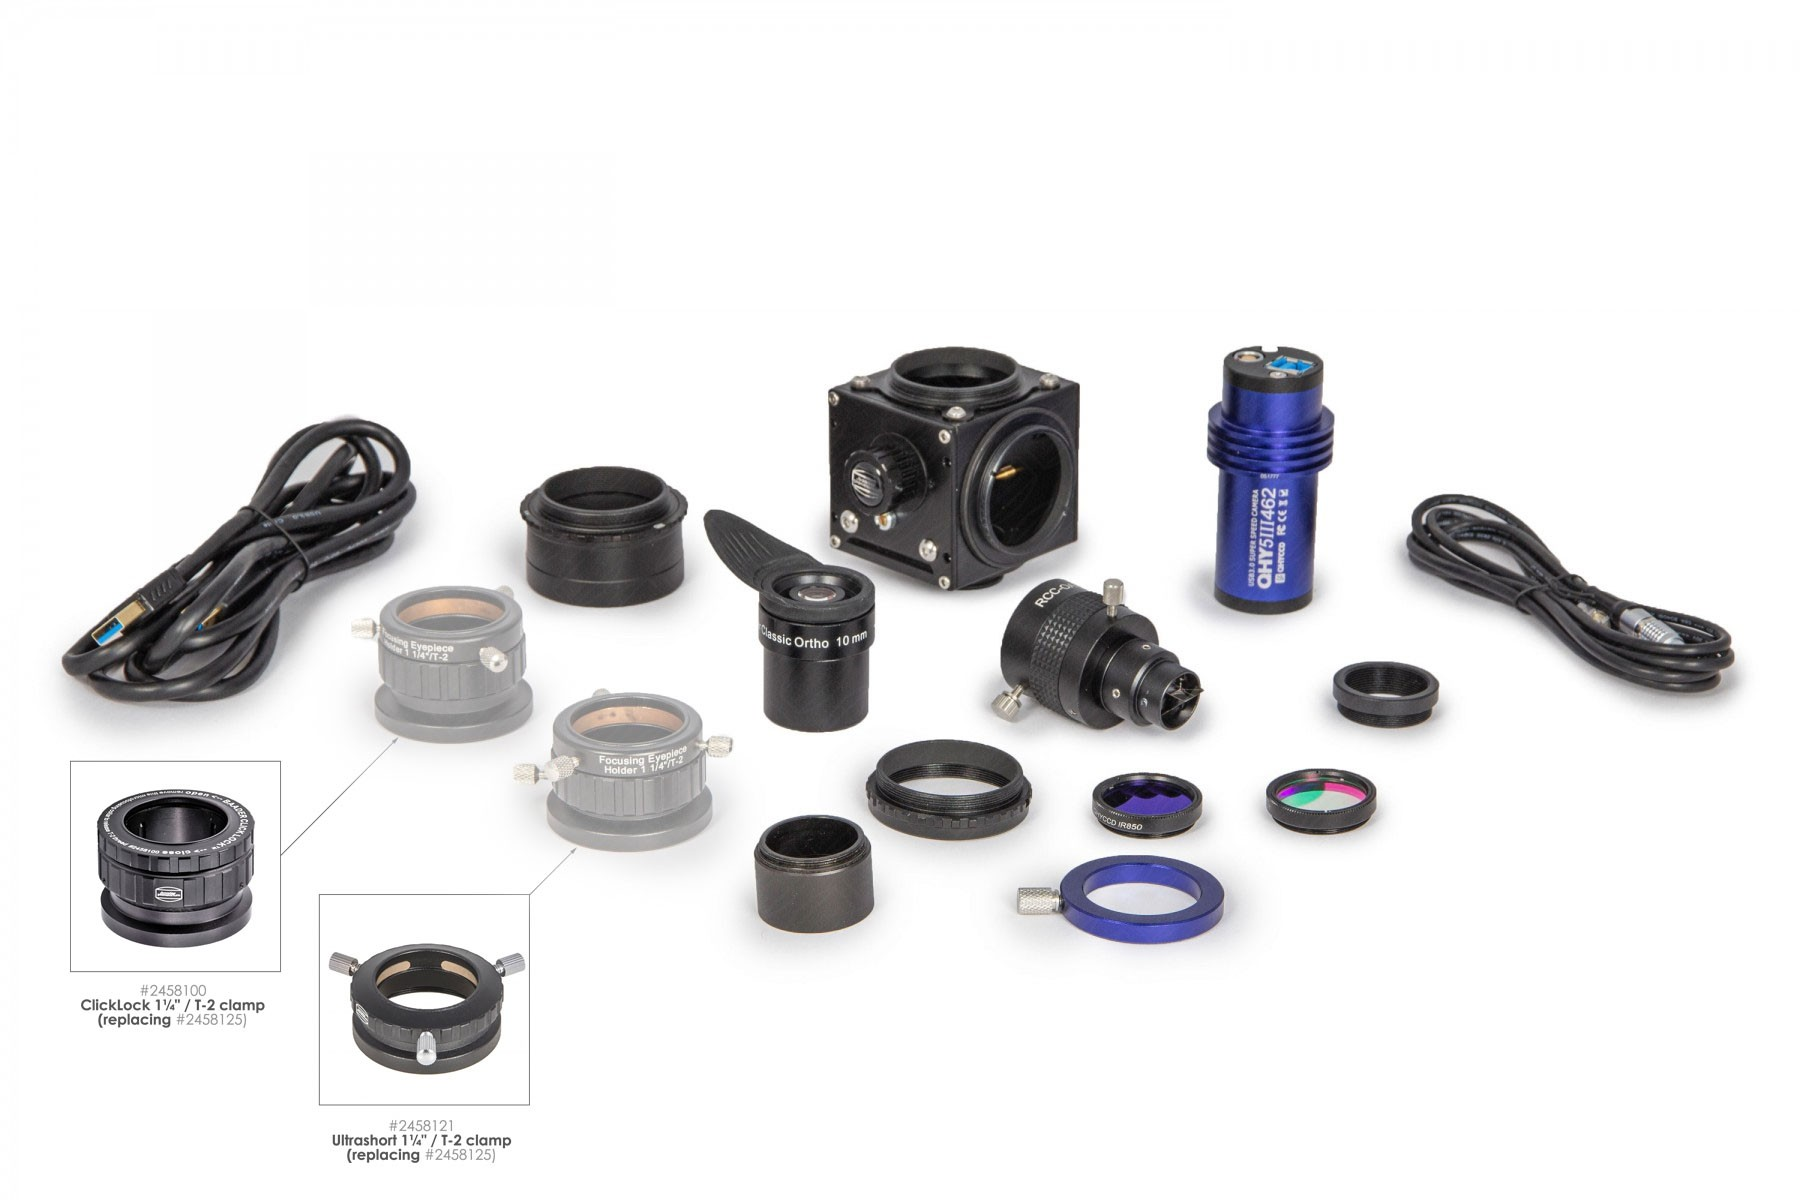 For a limited time: Photo-Bundle QHY-5-III-462C + BFM II scope of supply